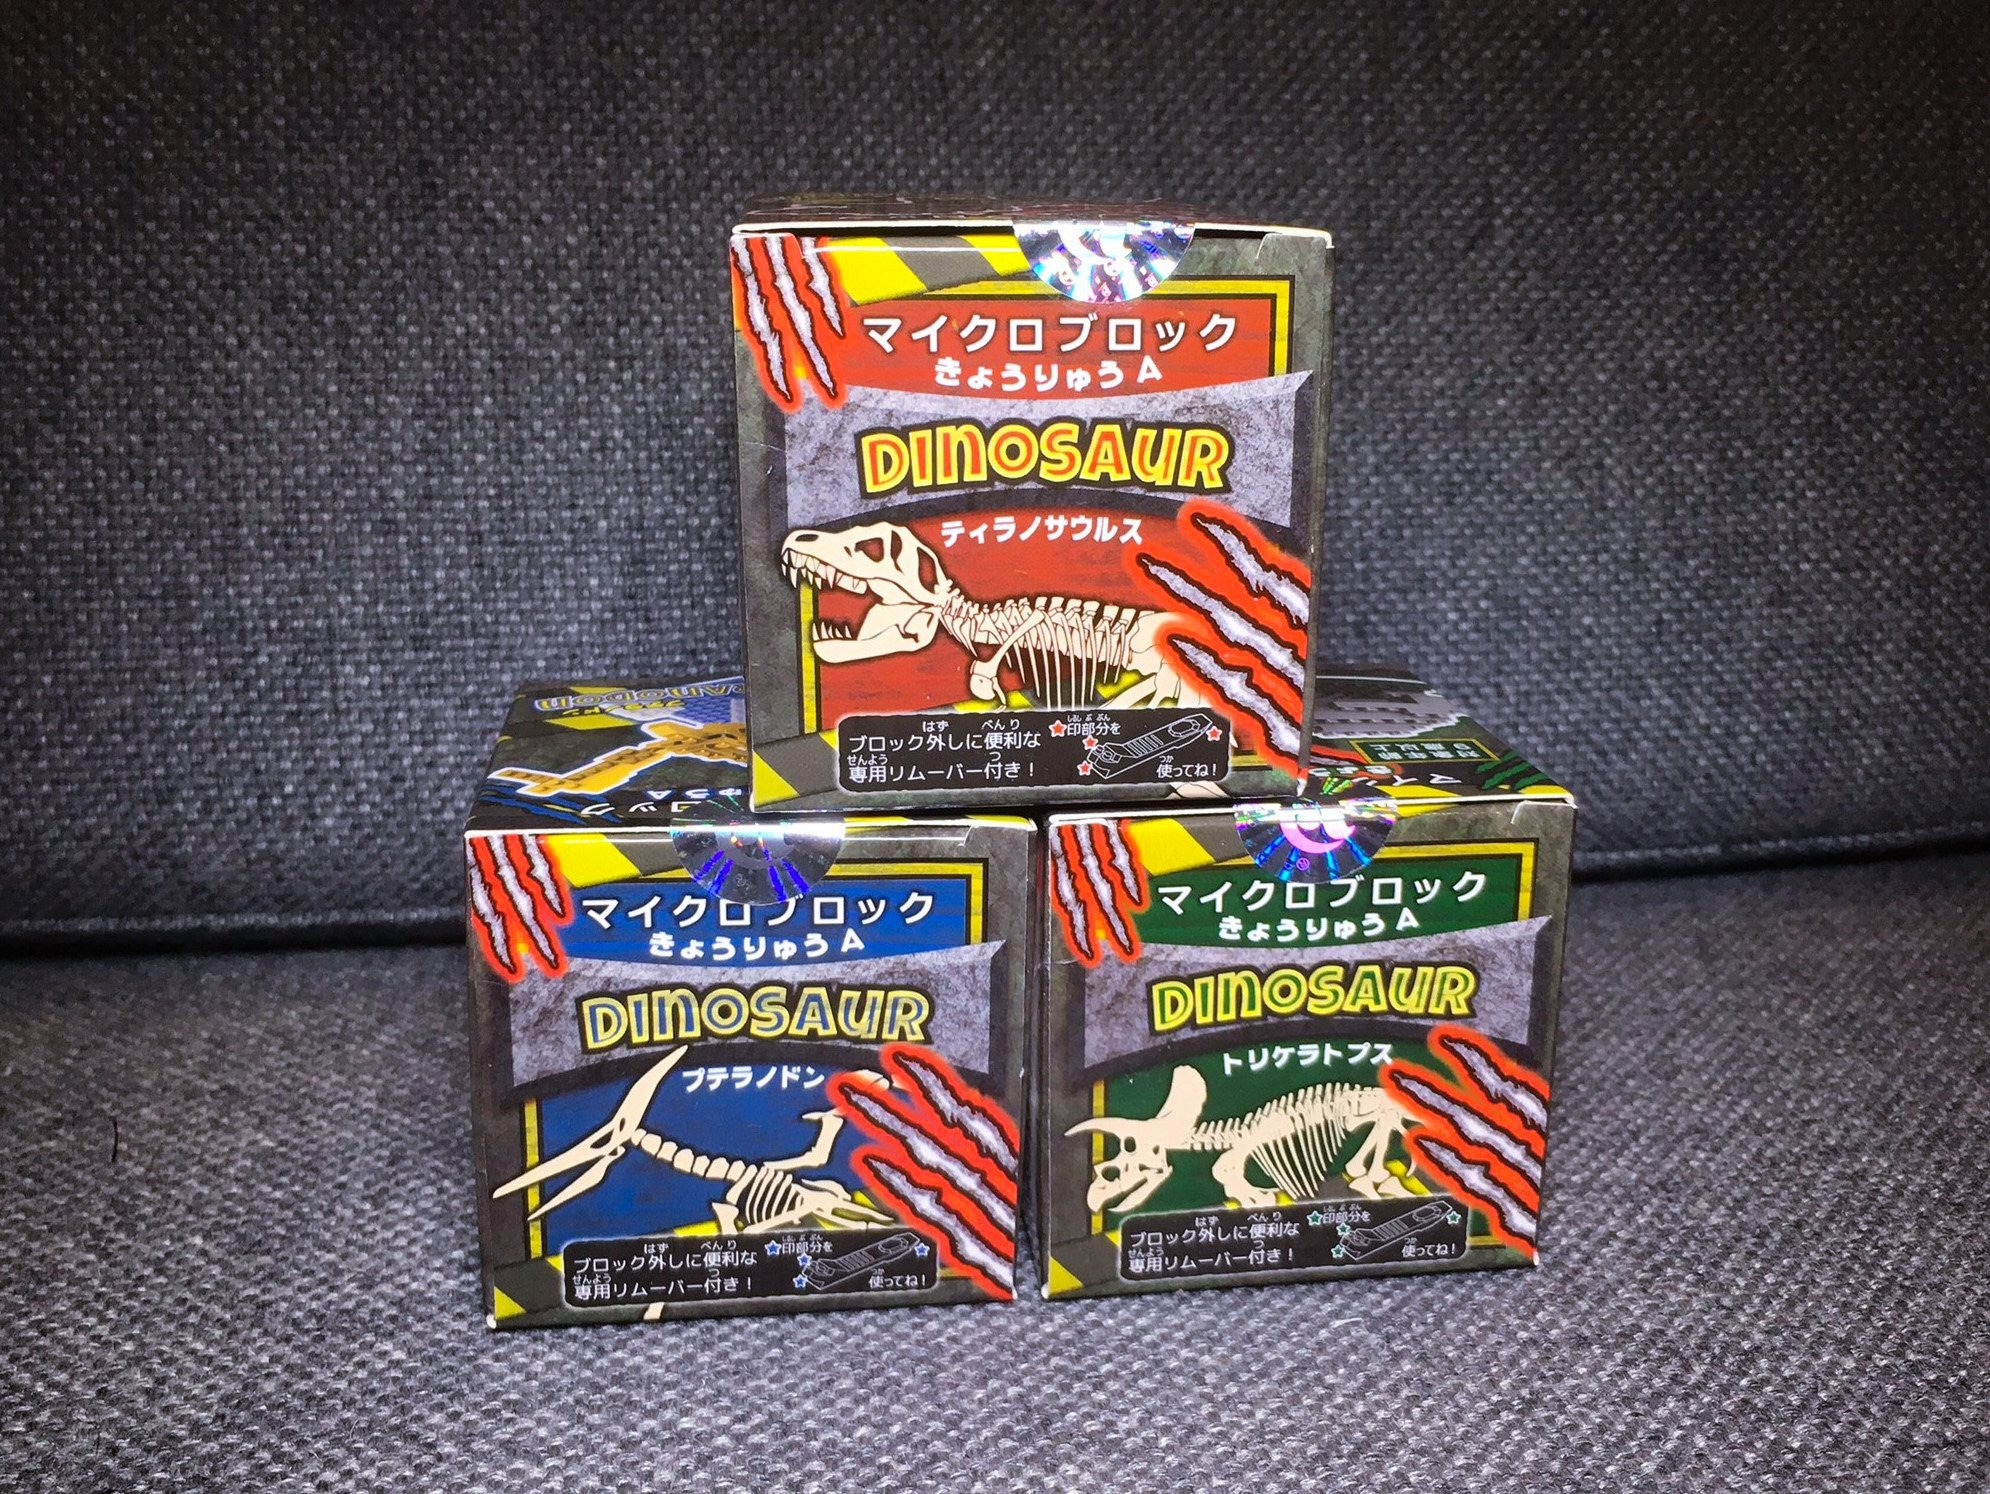 MICRO BLOCK Dinosaurs Series set | RARE FIND ZAKKA